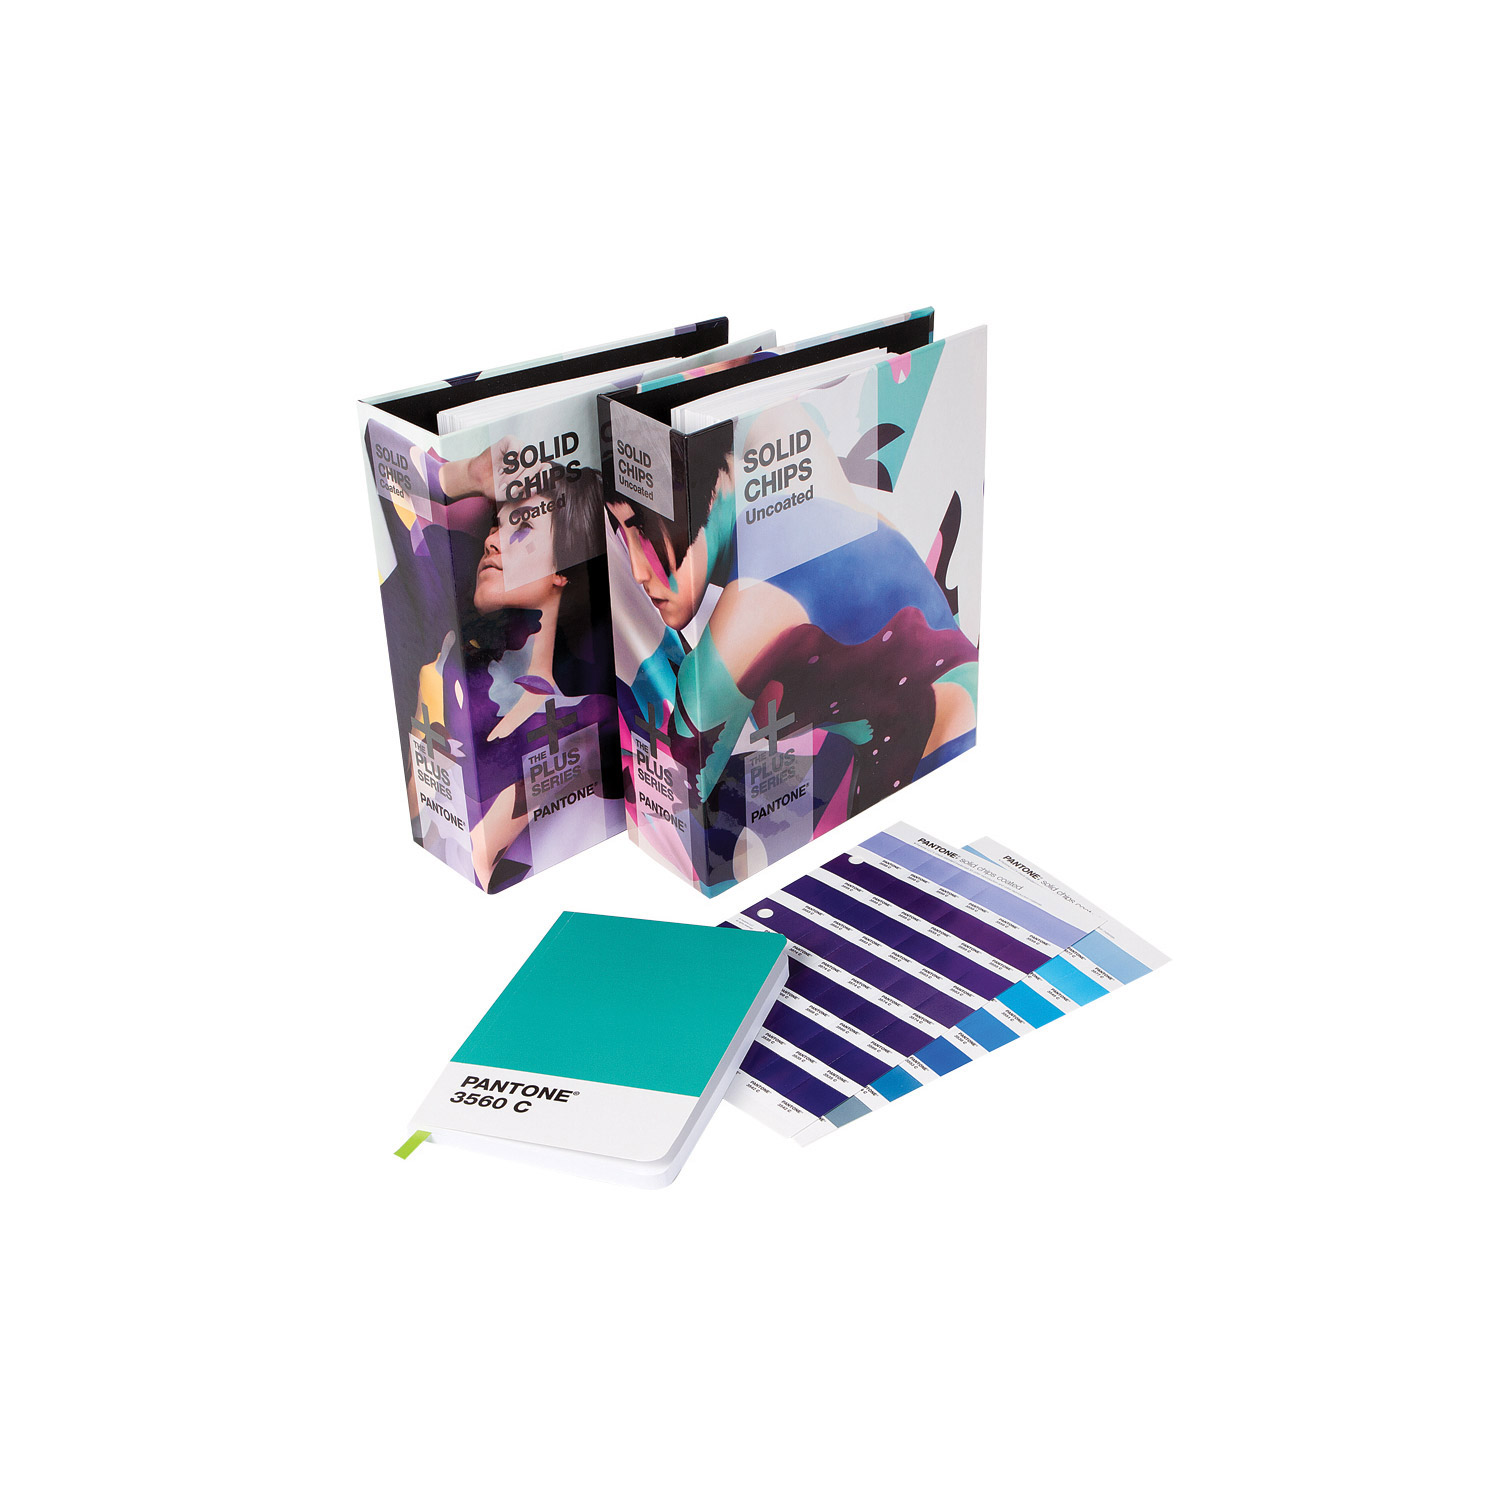 Pantone Solid Two Book Set With Notebook